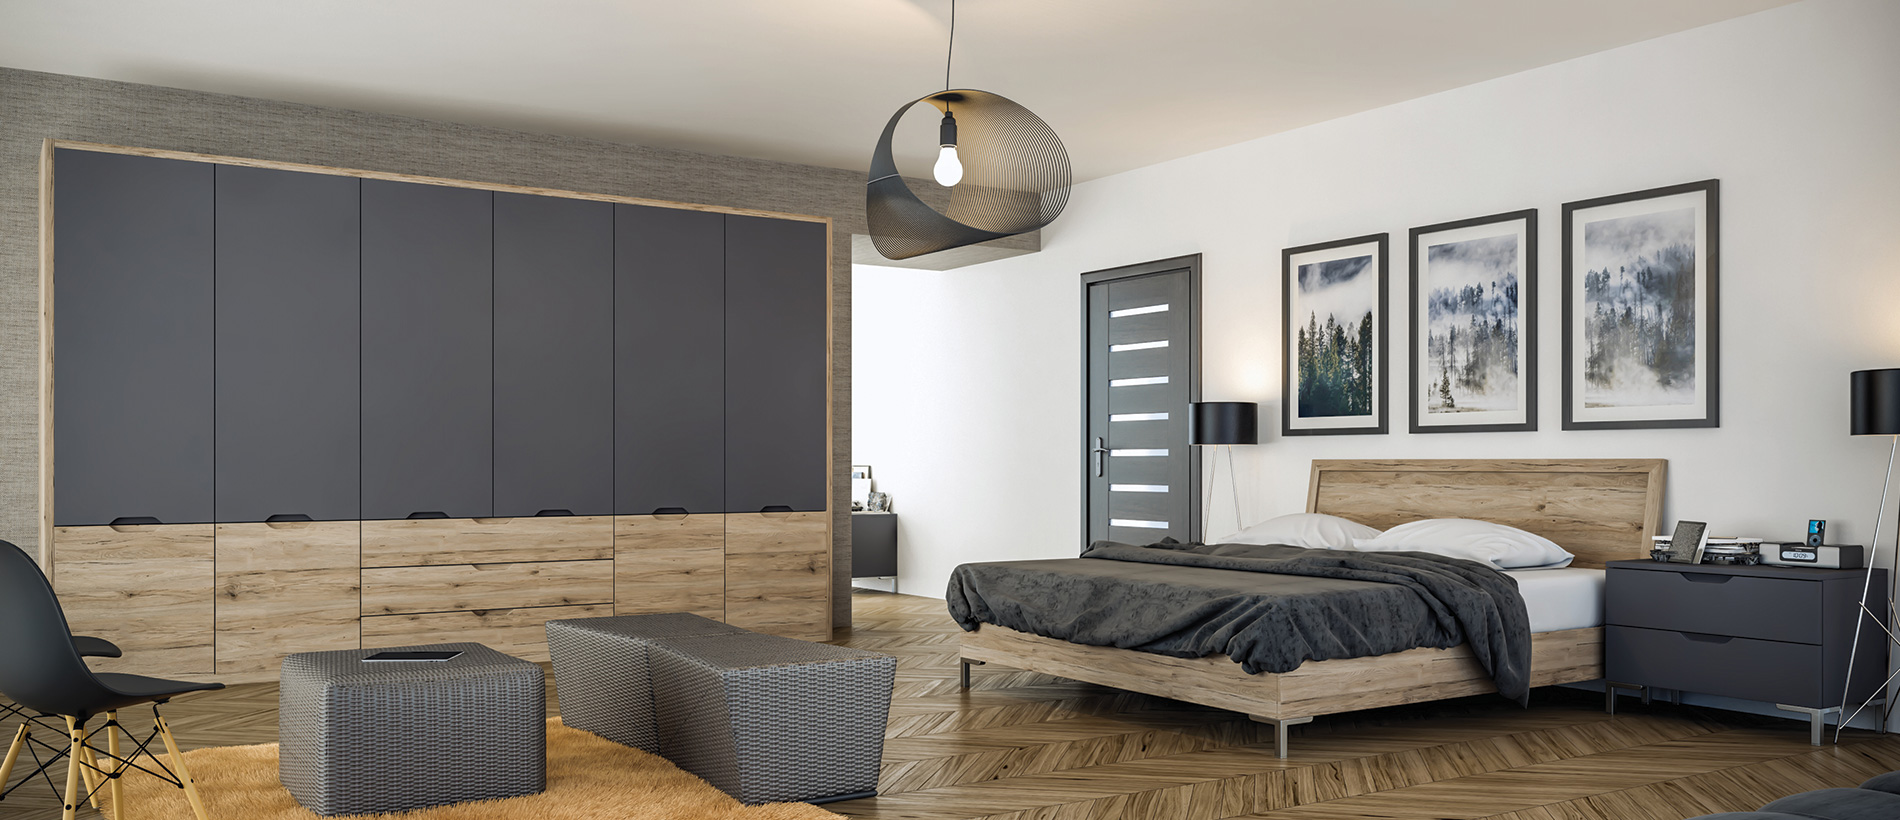 bespoke bedroom furniture | wardrobes and bedrooms